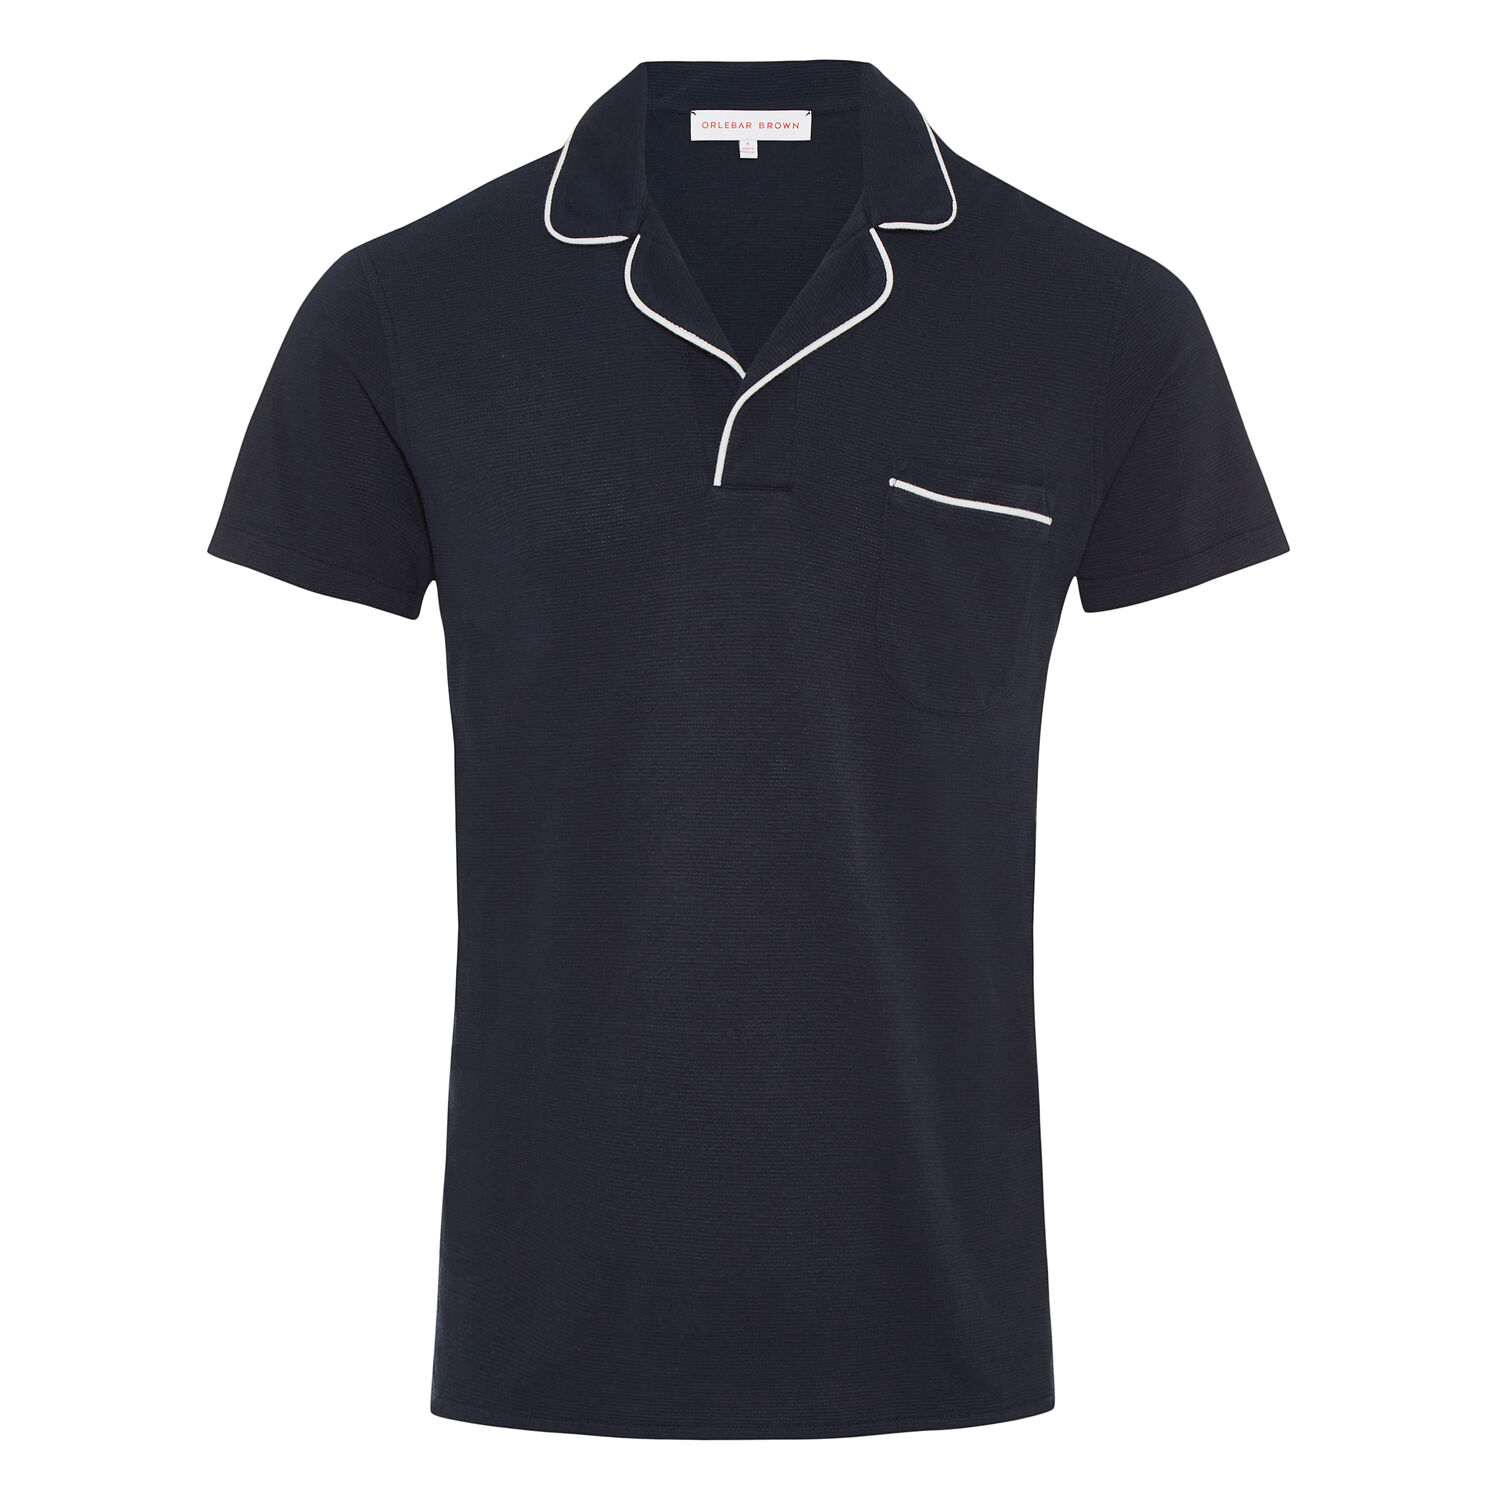 19ff6b78aab Donald Piping - Navy/White Resort Polo | Orlebar Brown